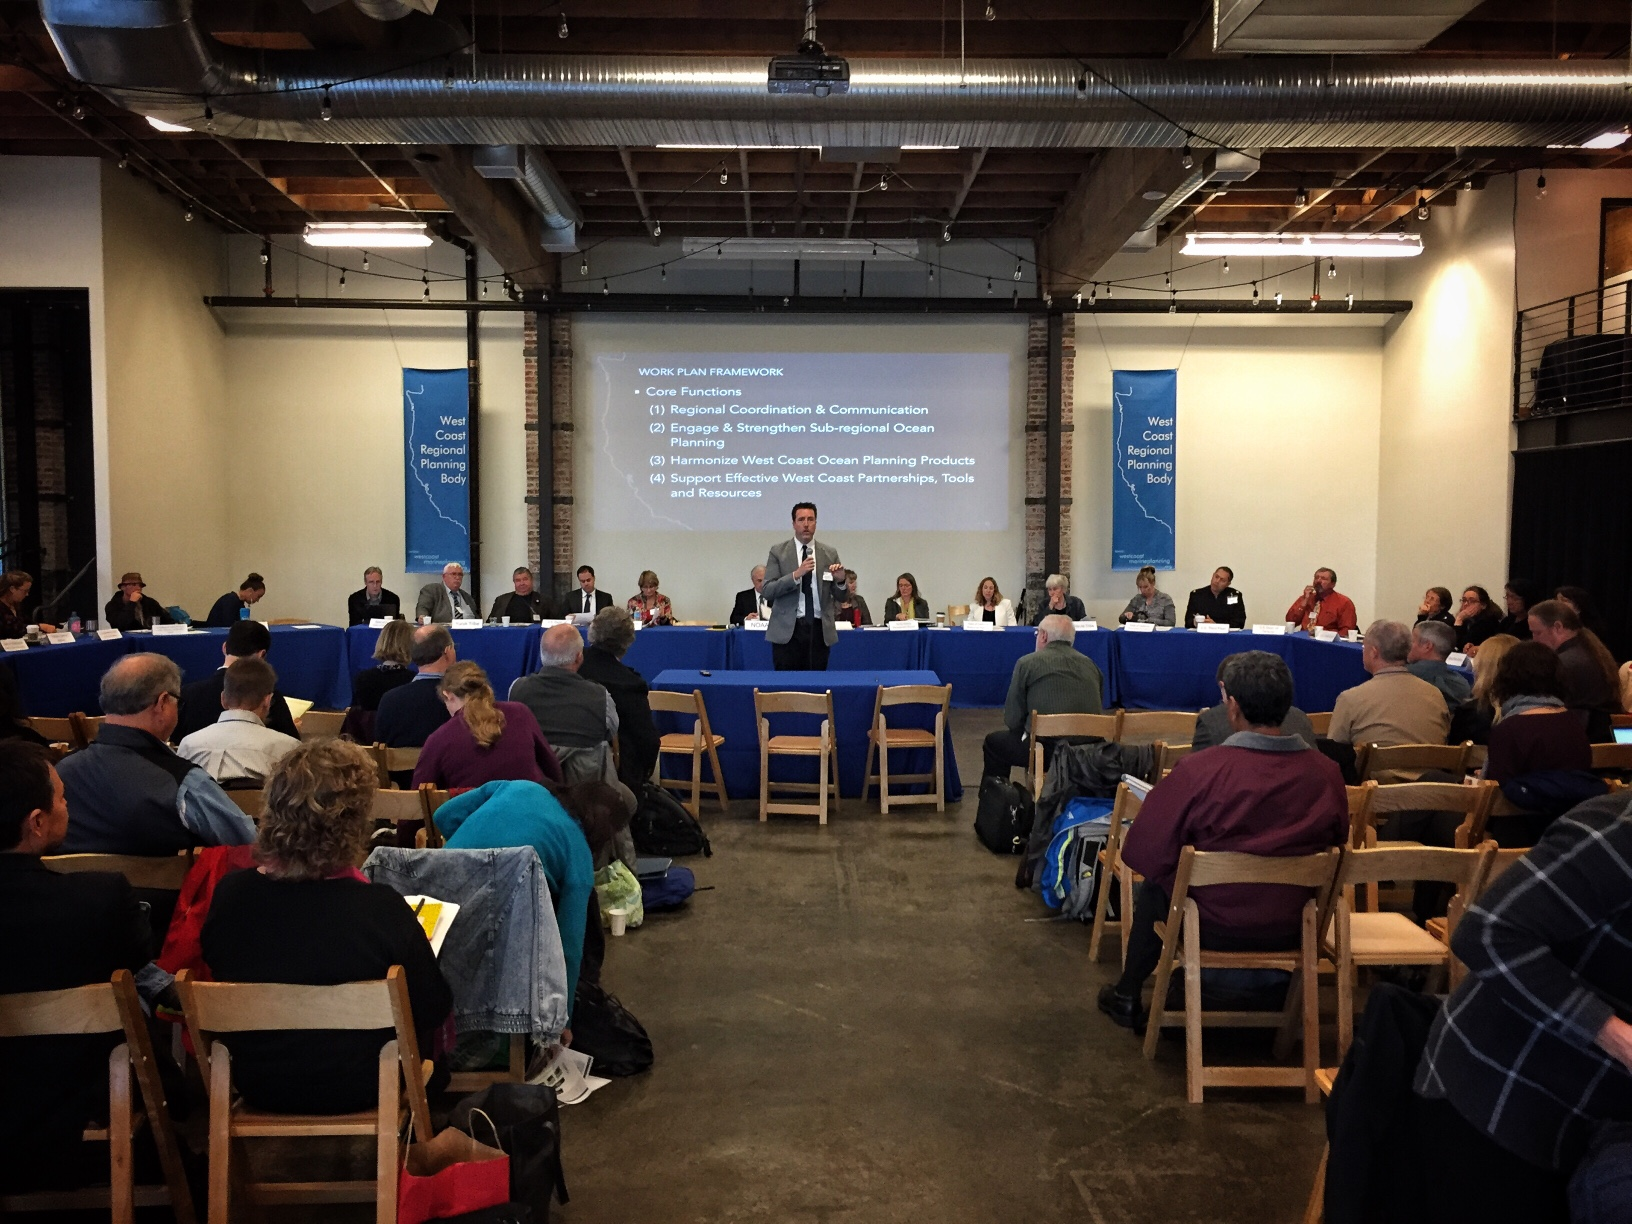 John Hansen, marine planning coordinator, addresses attendees at the west coast regional planning body meeting, Portland, OR. The WCRPB is seated behind him.